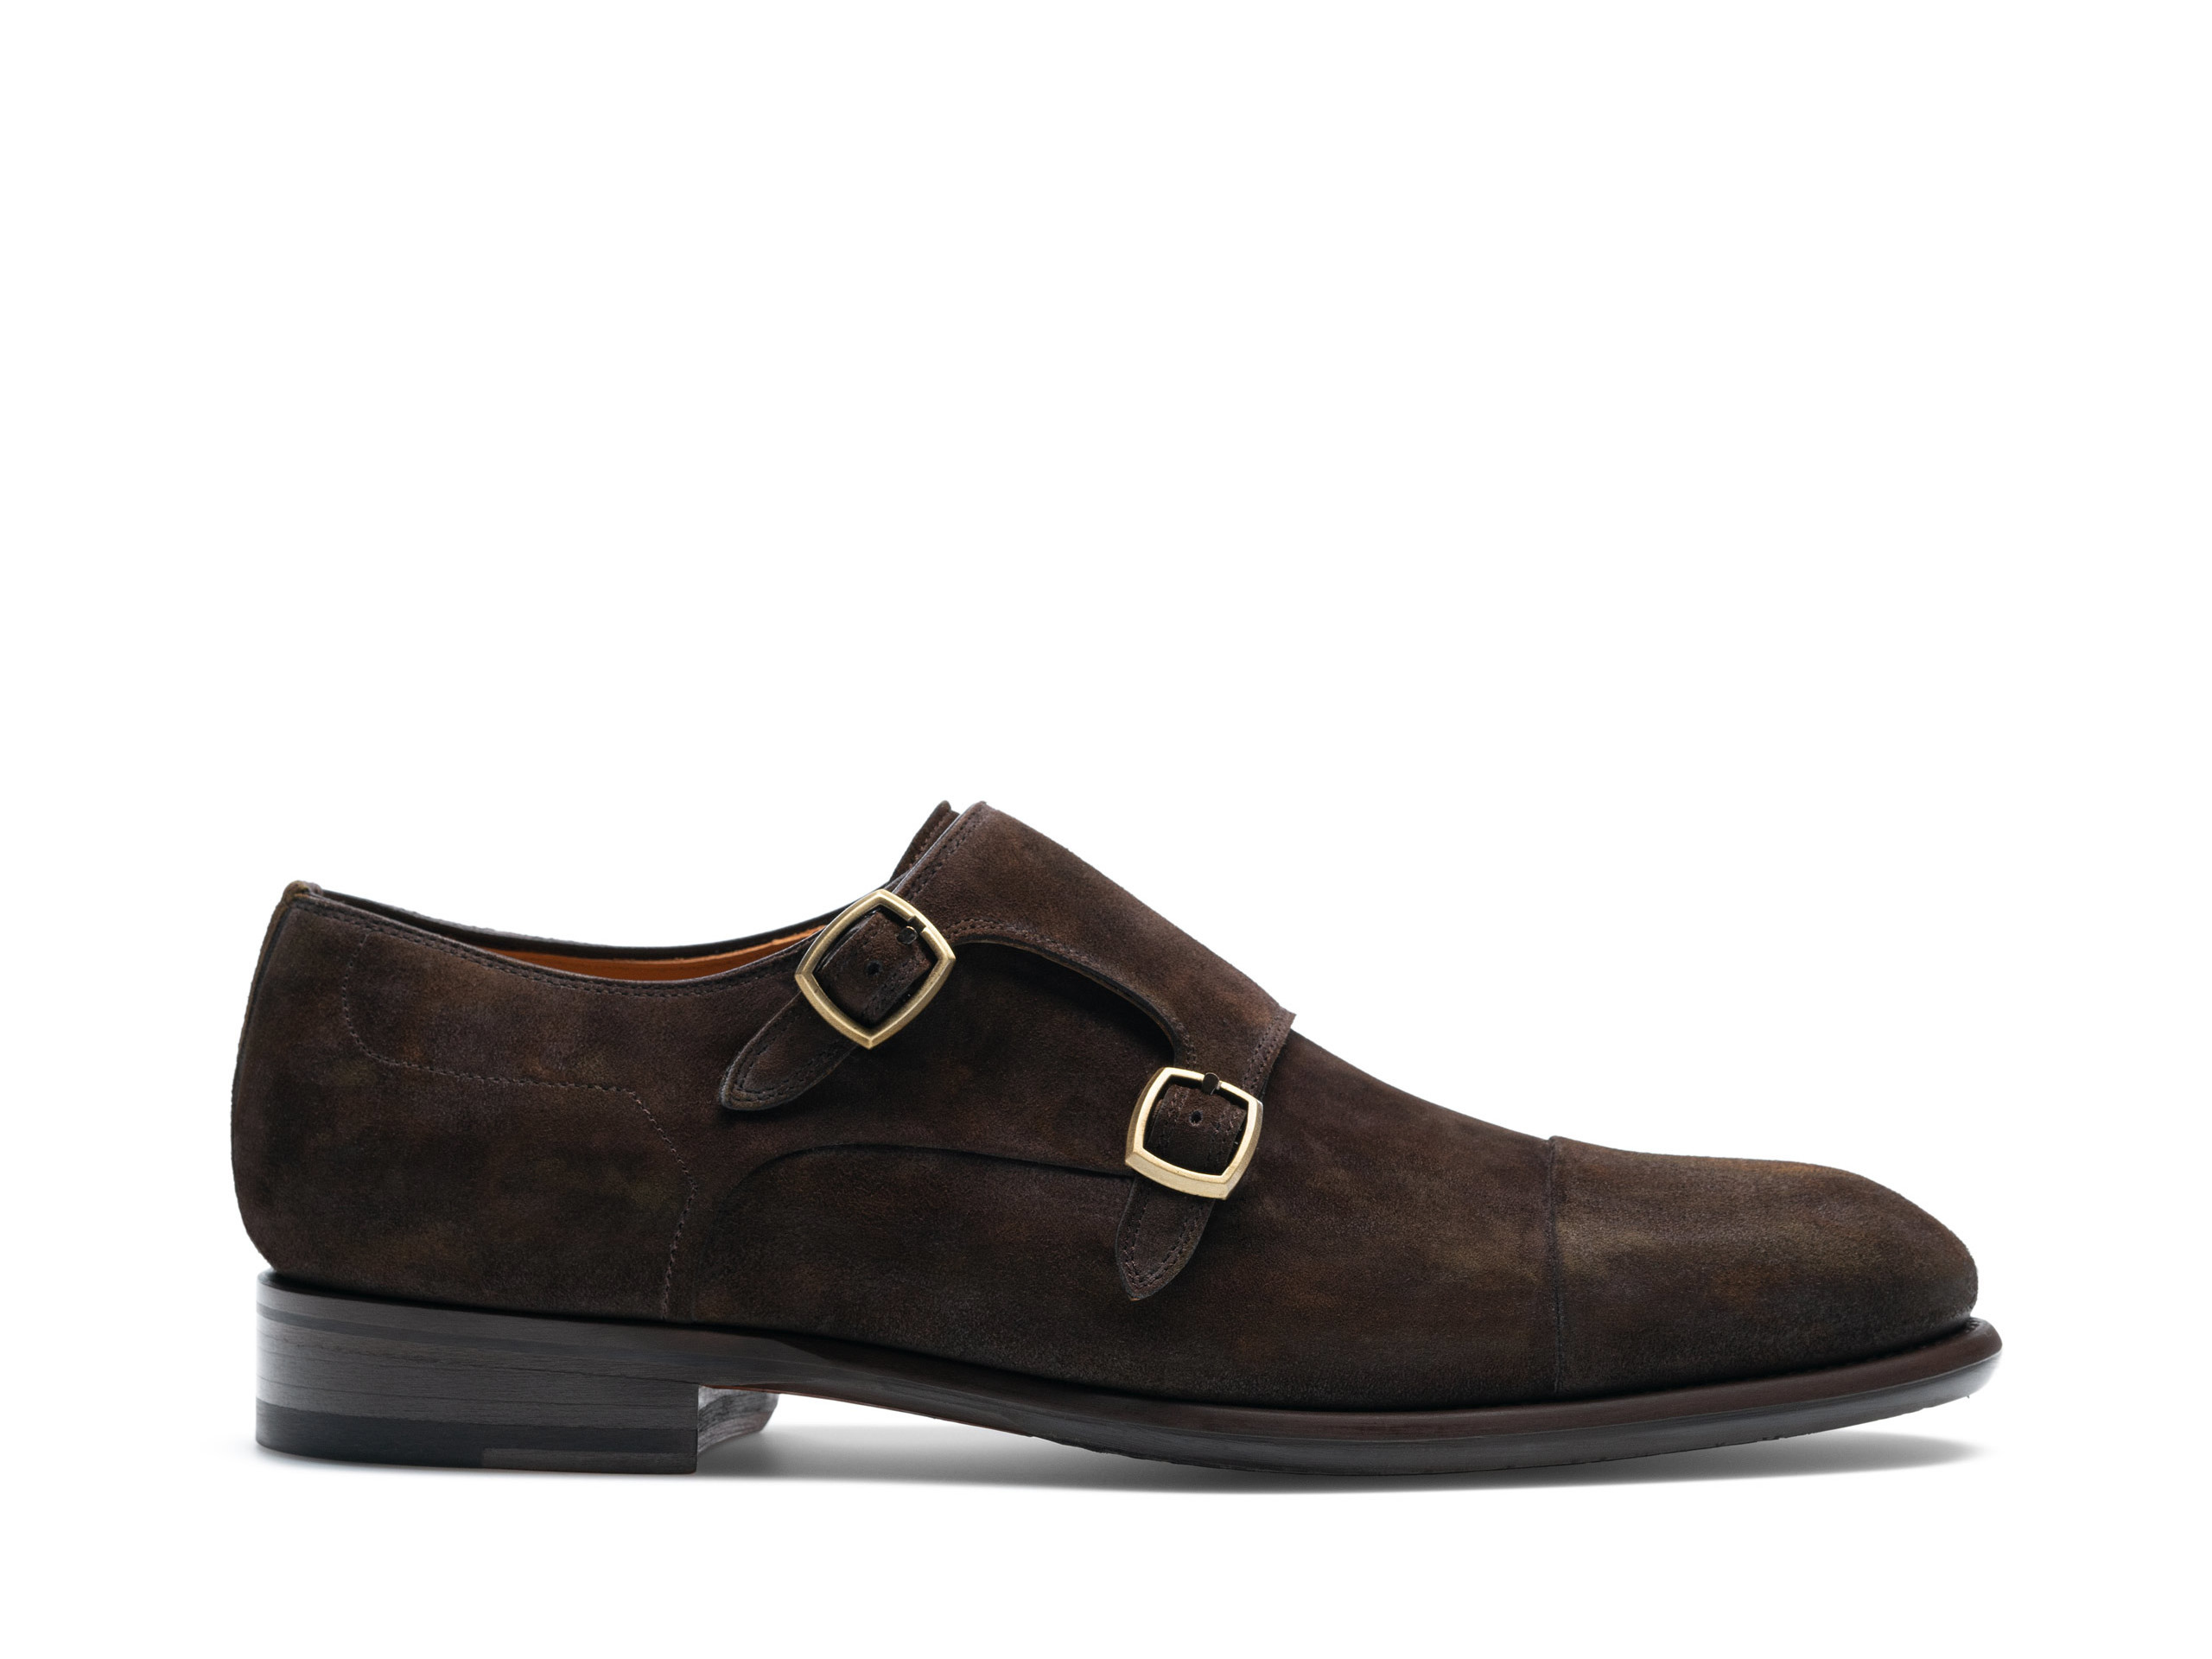 Side view of the Magnanni Mancera Brown Suede Men's Derby Shoes